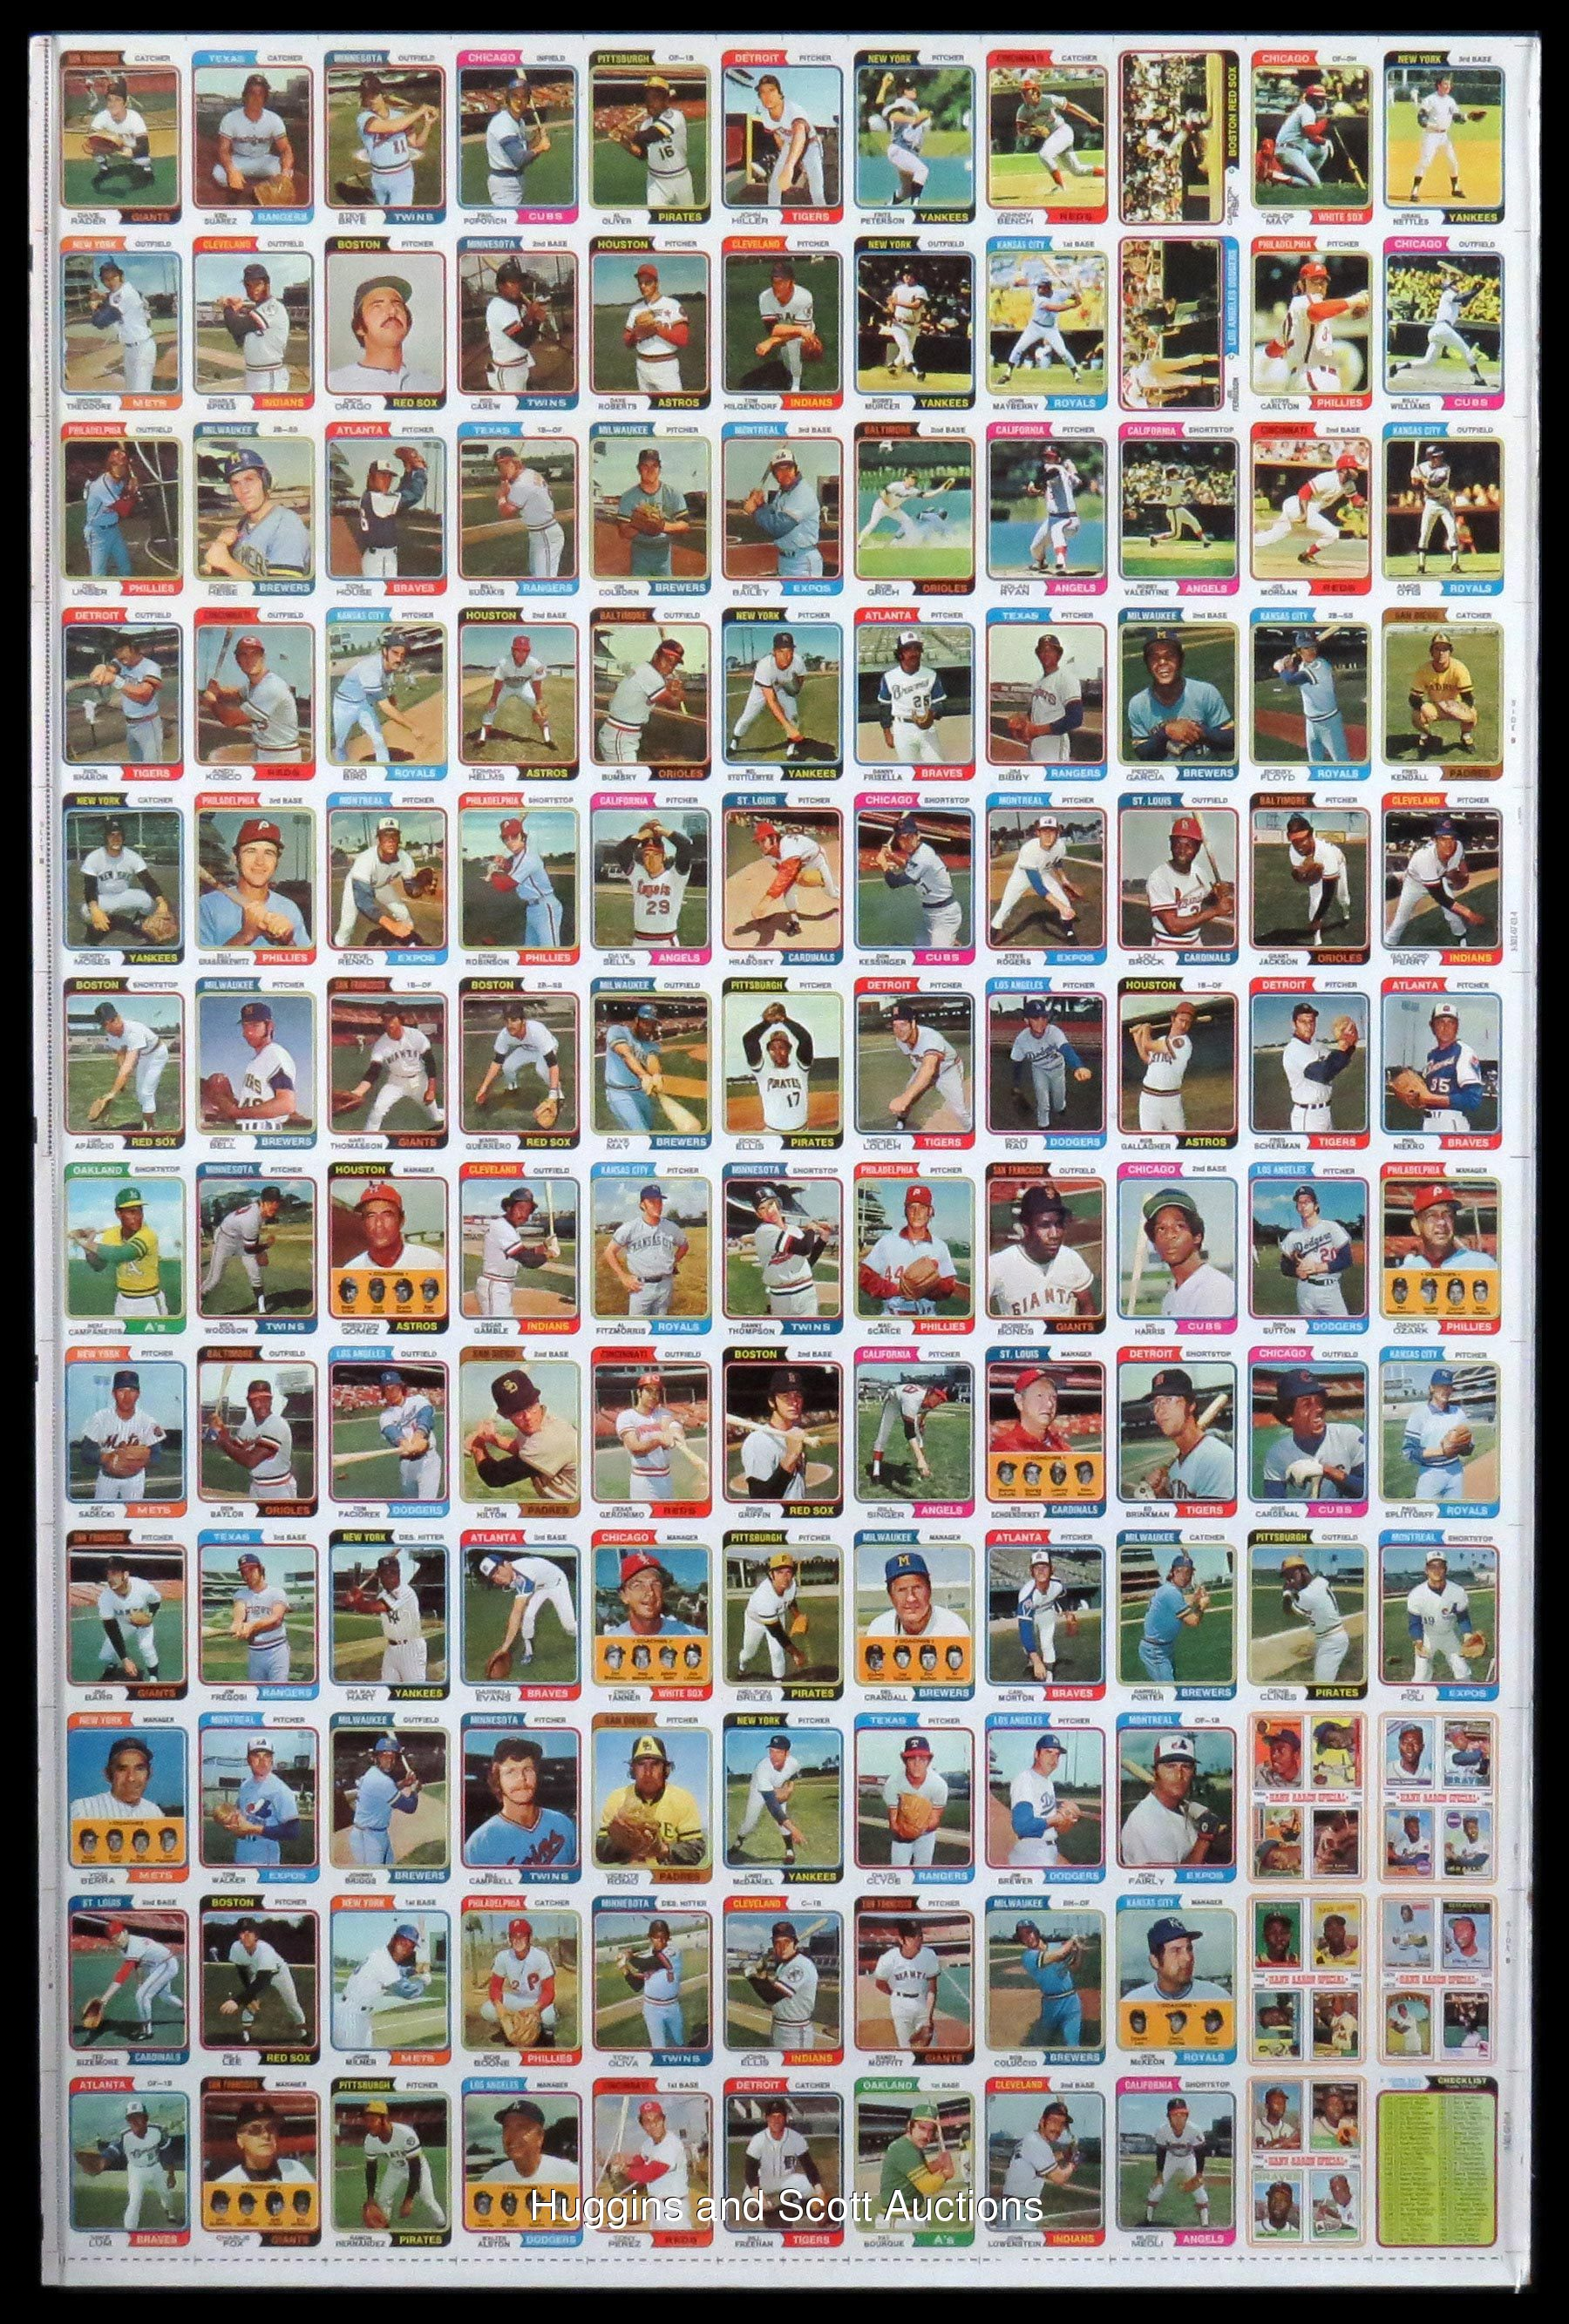 67 1974 1992 Multi Sport Uncut Sheets With 1974 Topps